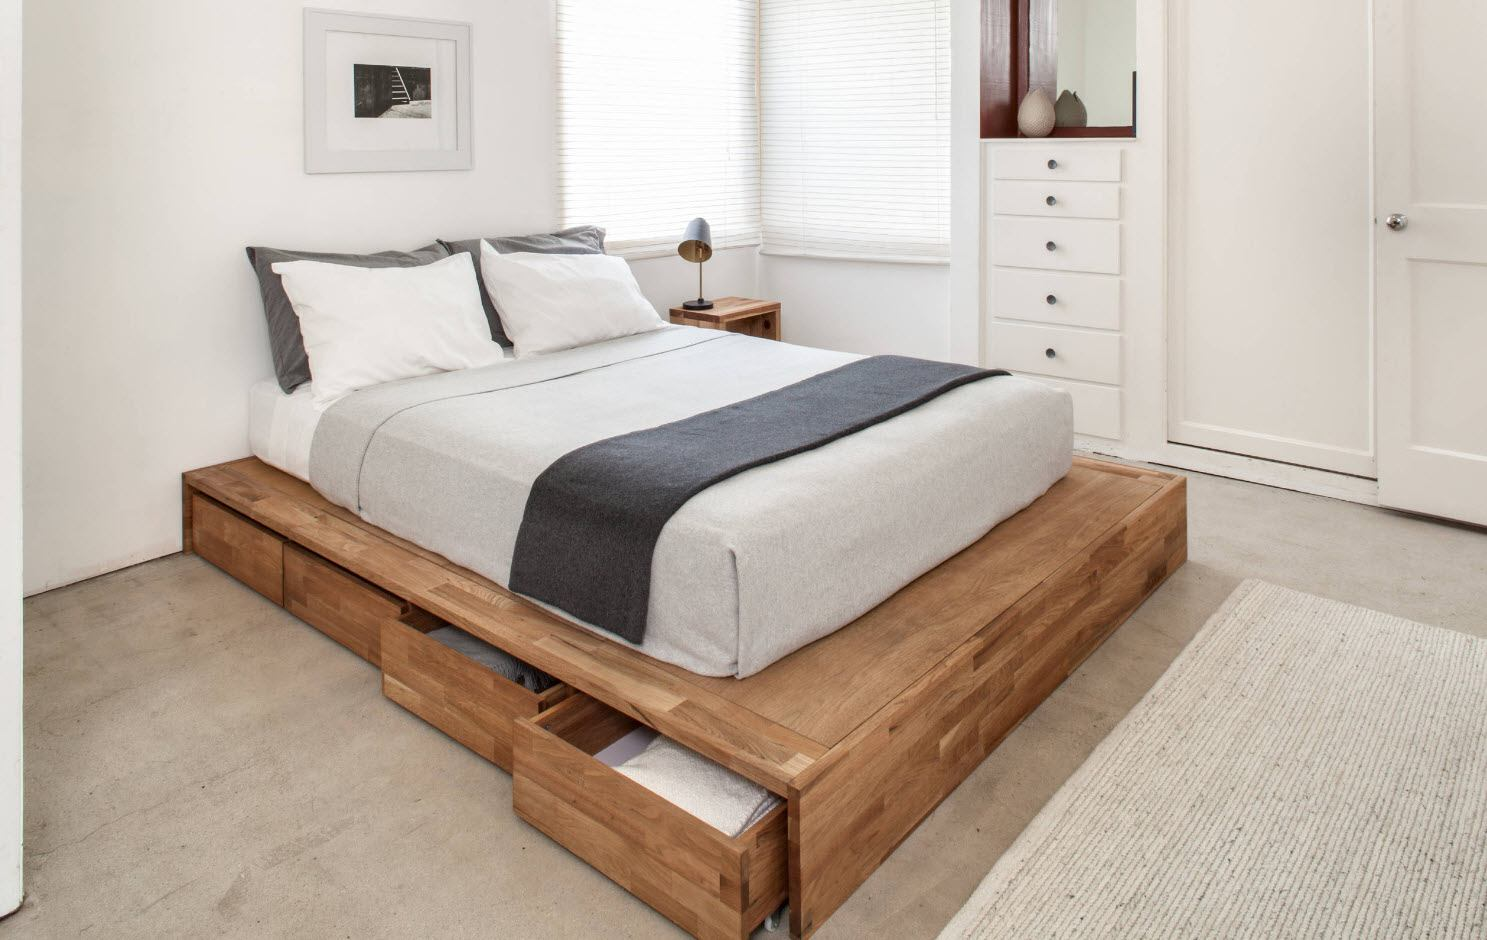 120 Square Feet Bedroom Interior Decoration Ideas. Simple modern design and bed with the storage boxes